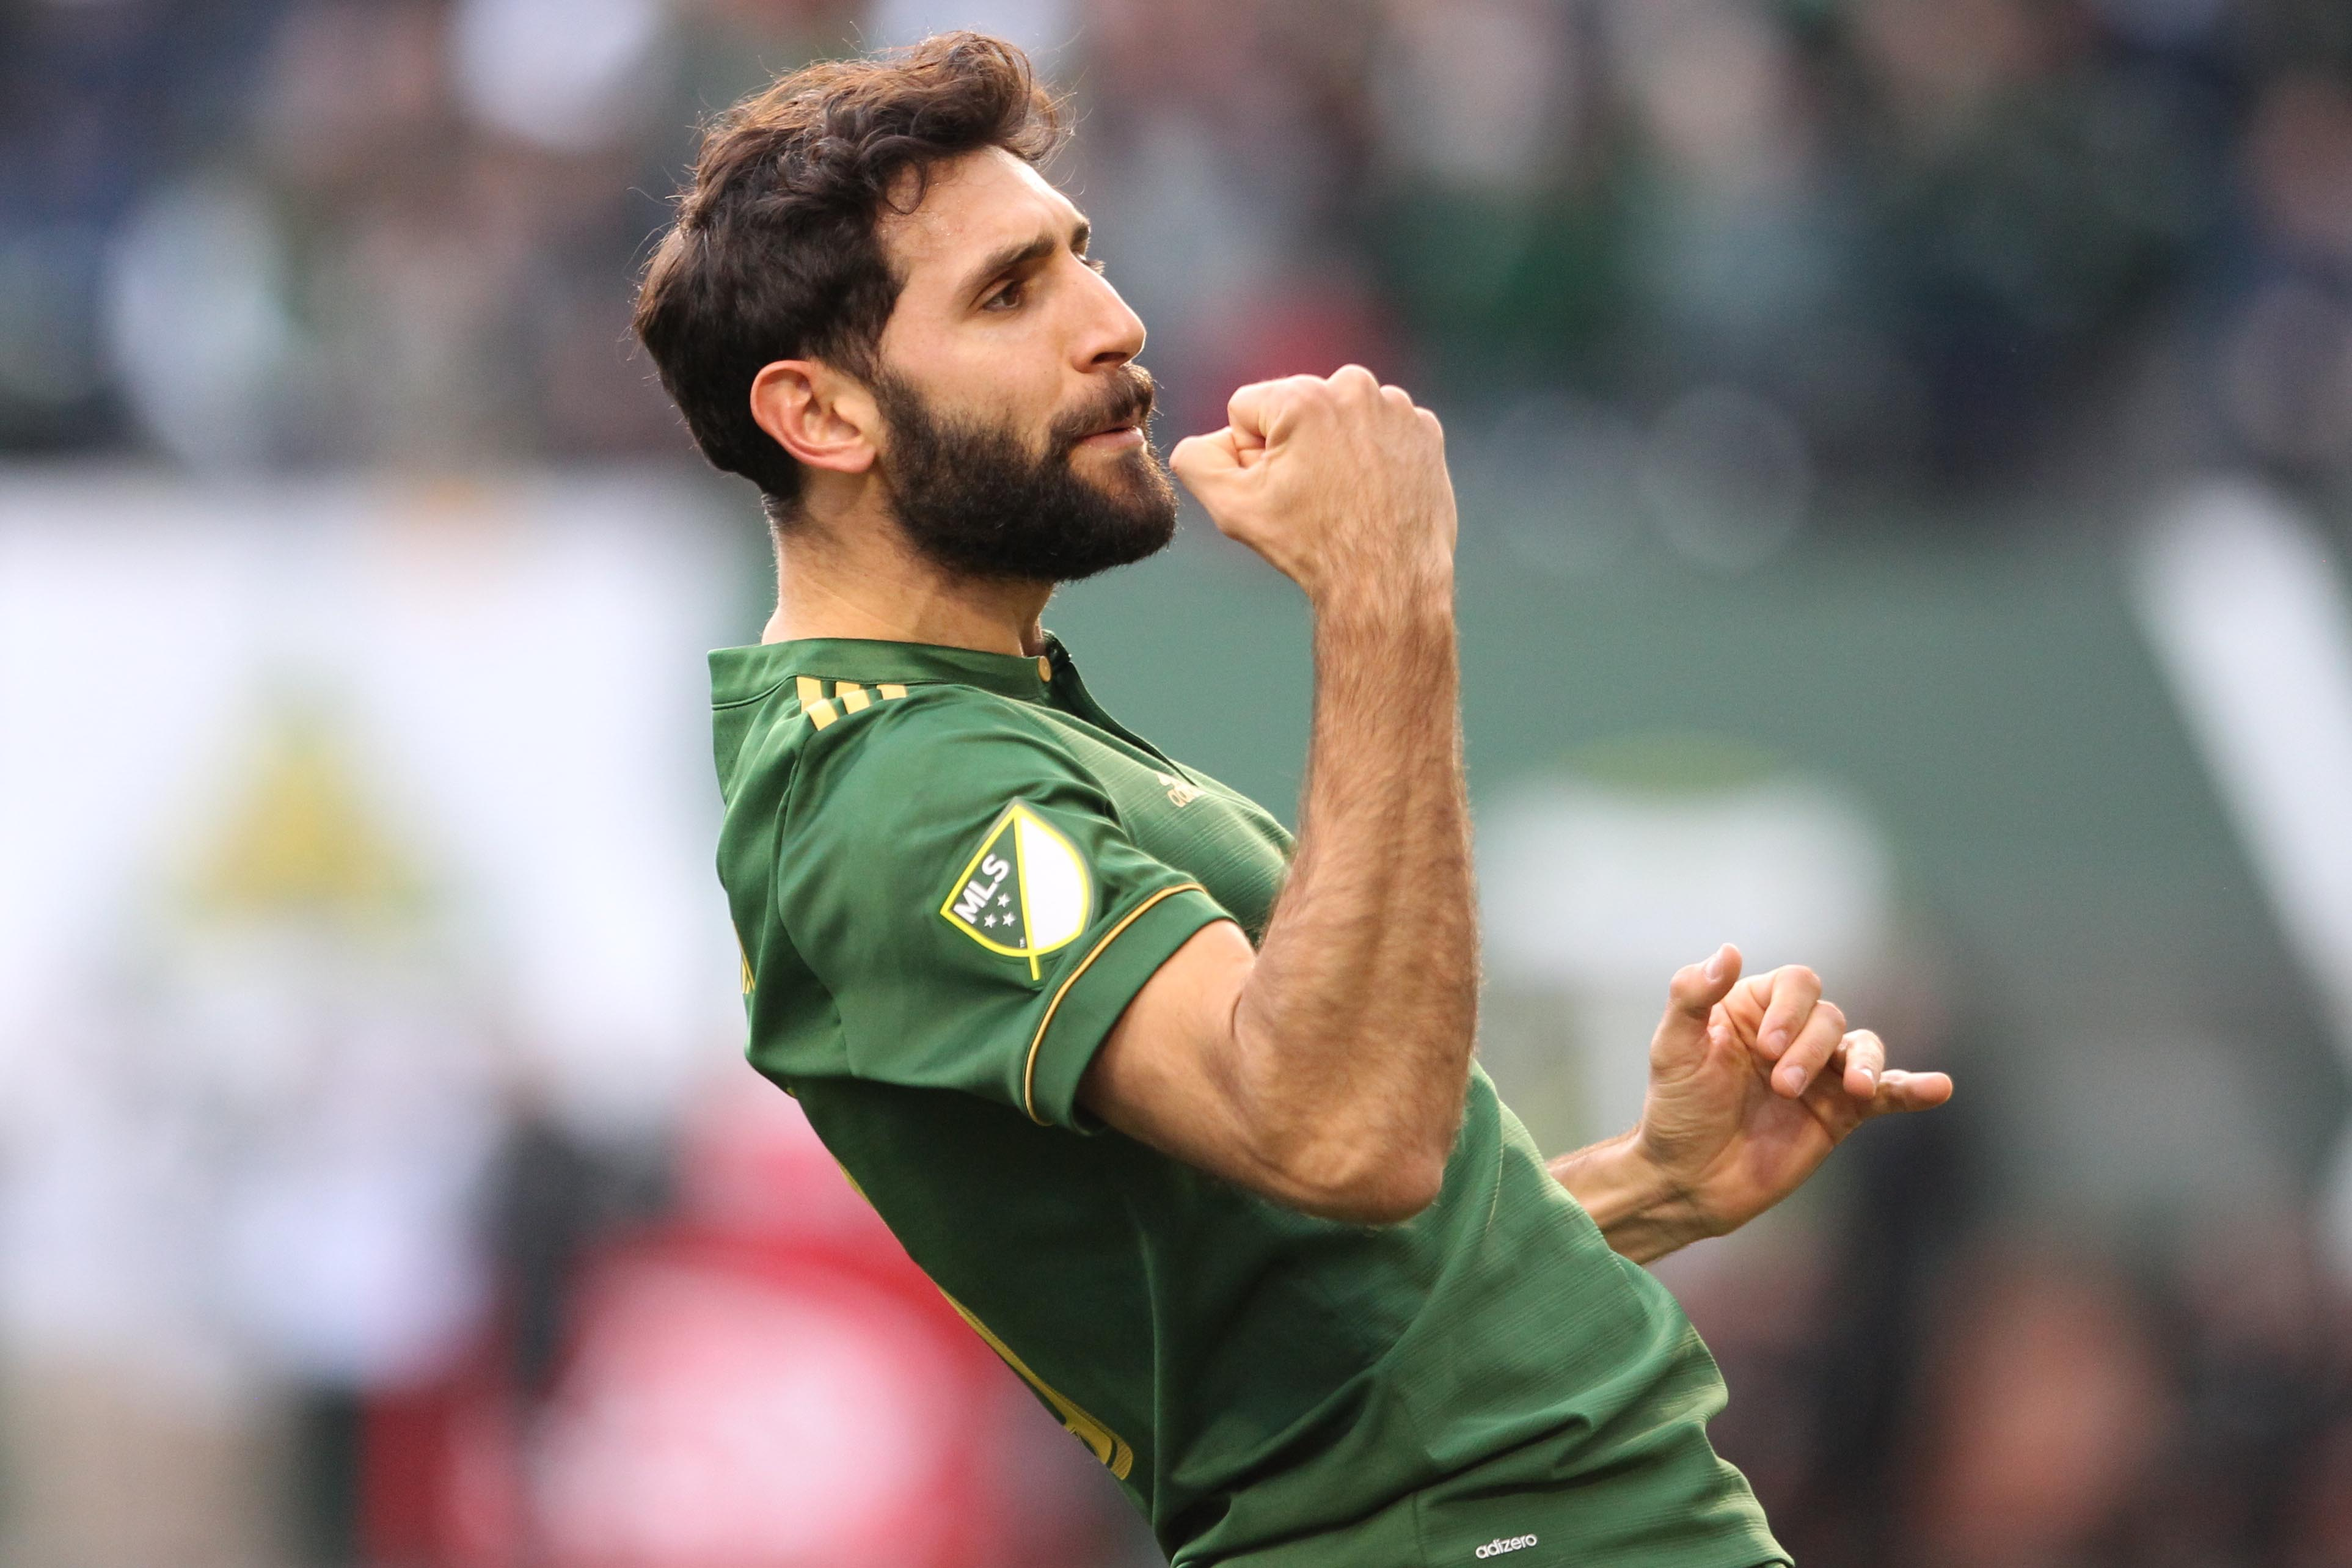 Portland Timbers' Diego Valeri celebrates after scoring a goal in the first half against the New England Revolution during an MLS soccer match at Providence Park in Portland, Oregon, on Sunday, April 2, 2017. Photo: The Oregonian via AP